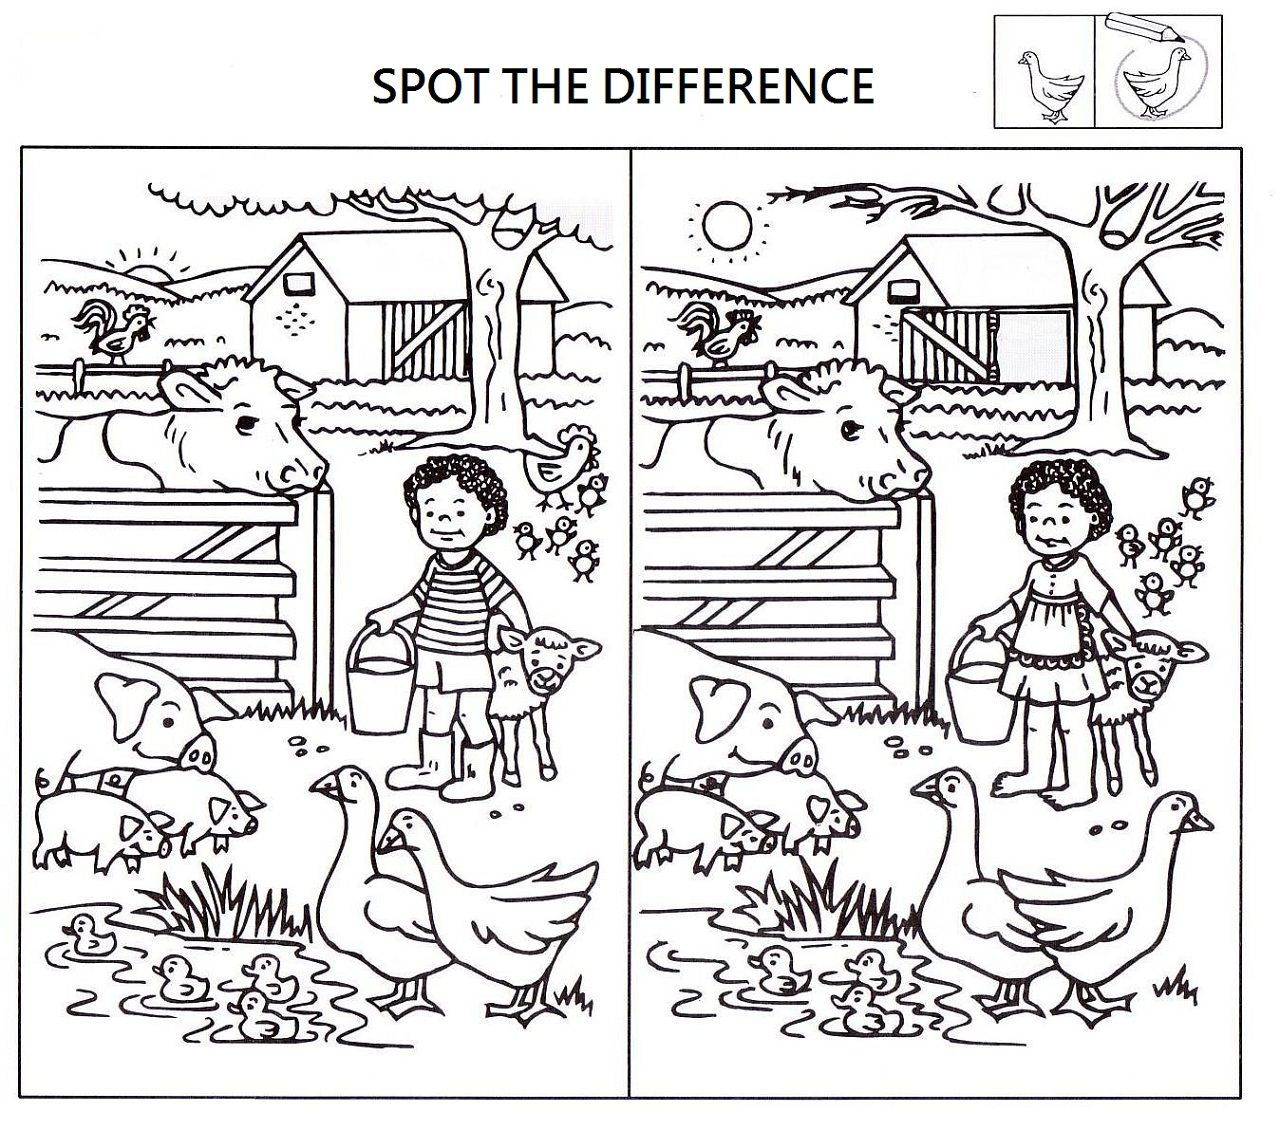 Find the Difference - Home Activity Village Spot the difference pictures printable black and white